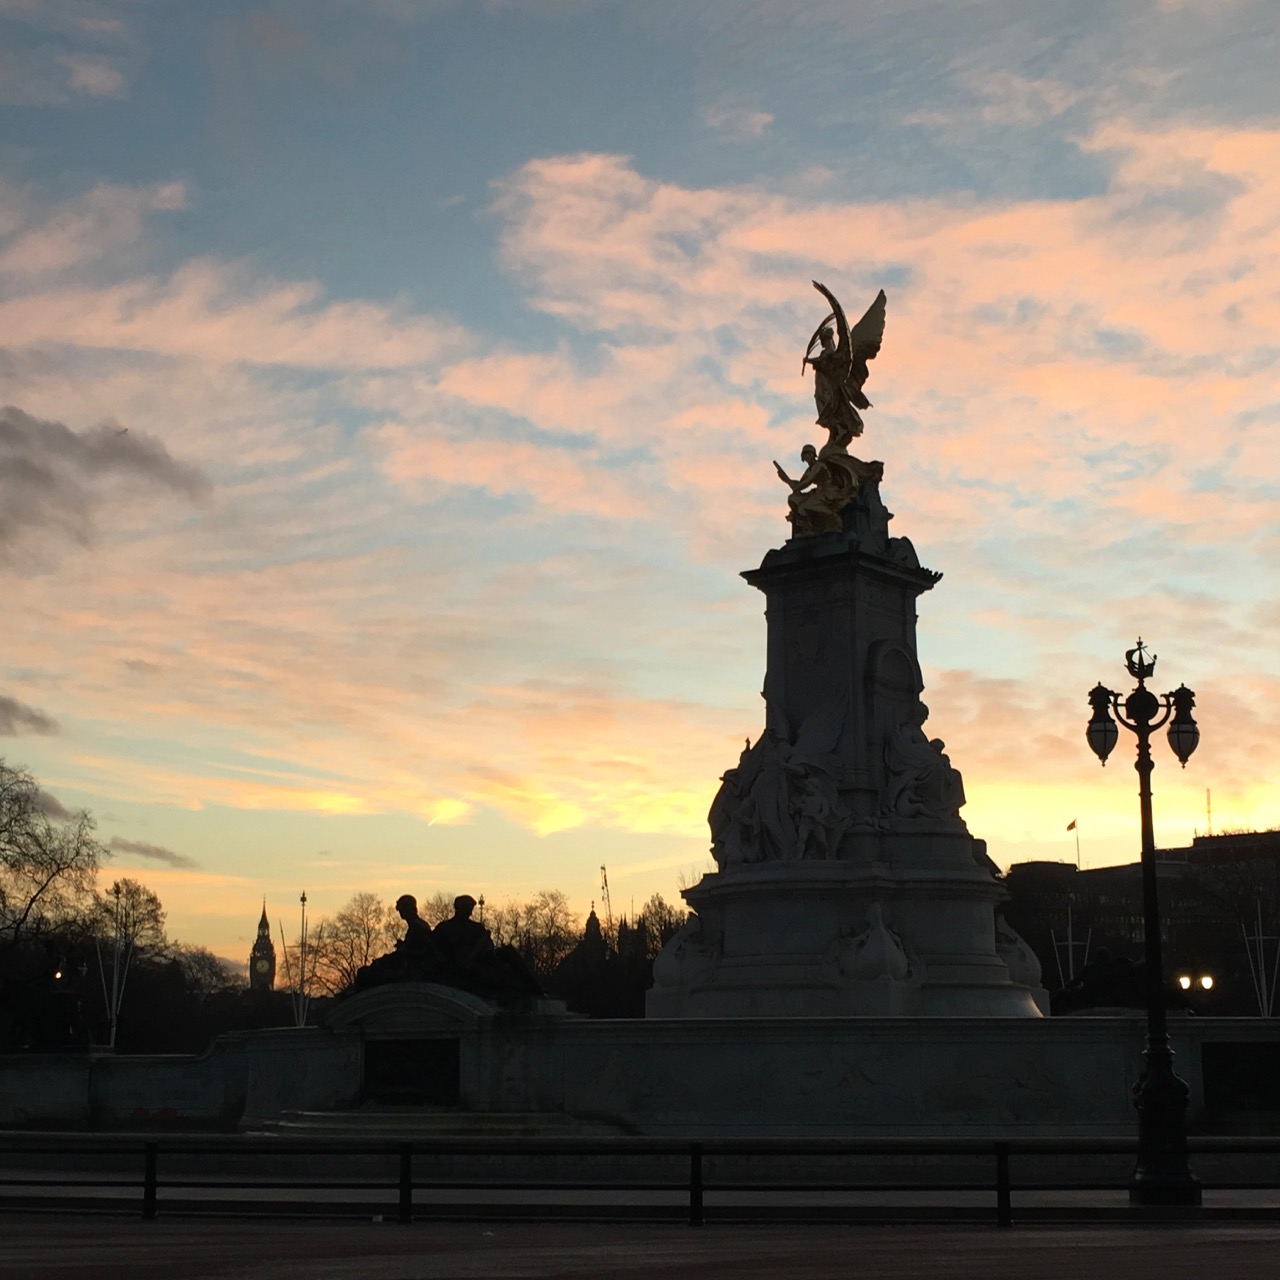 Sunrise, London